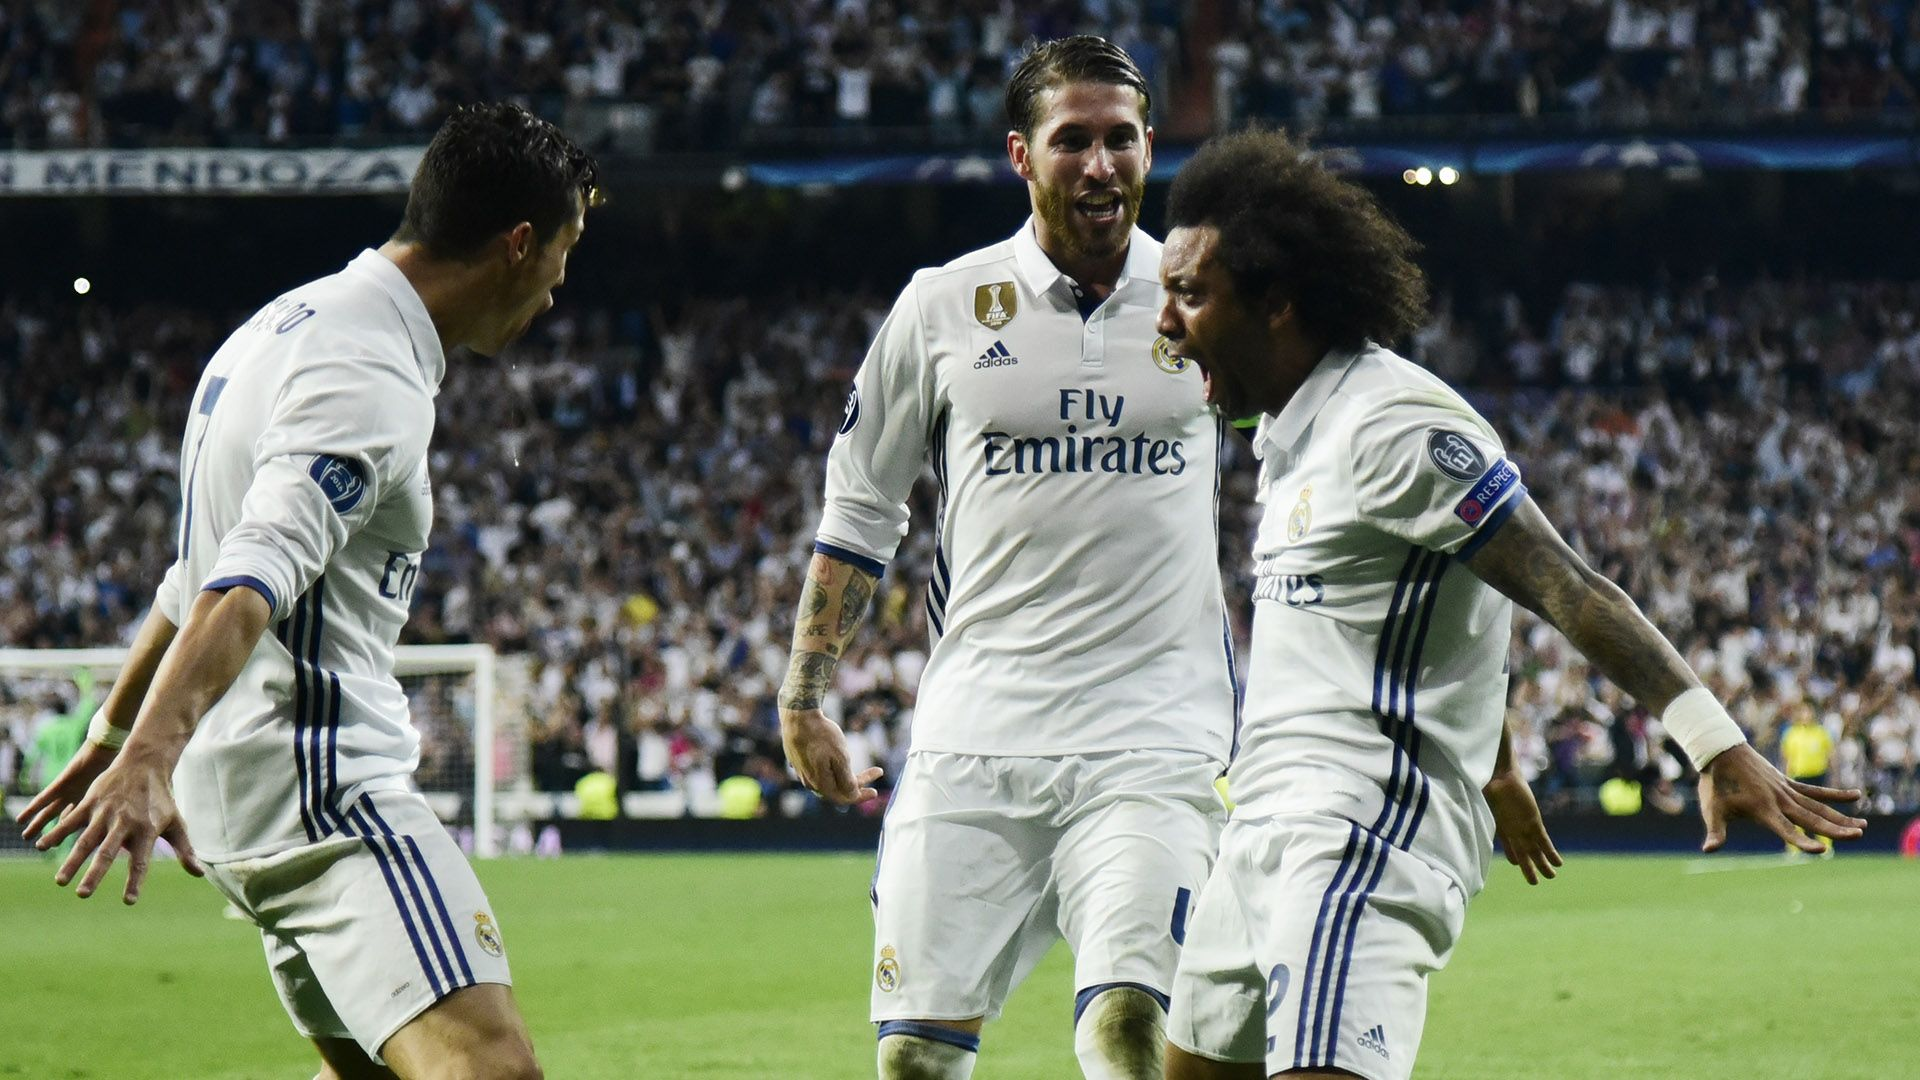 marcelo hd images : get free top quality marcelo hd images for your